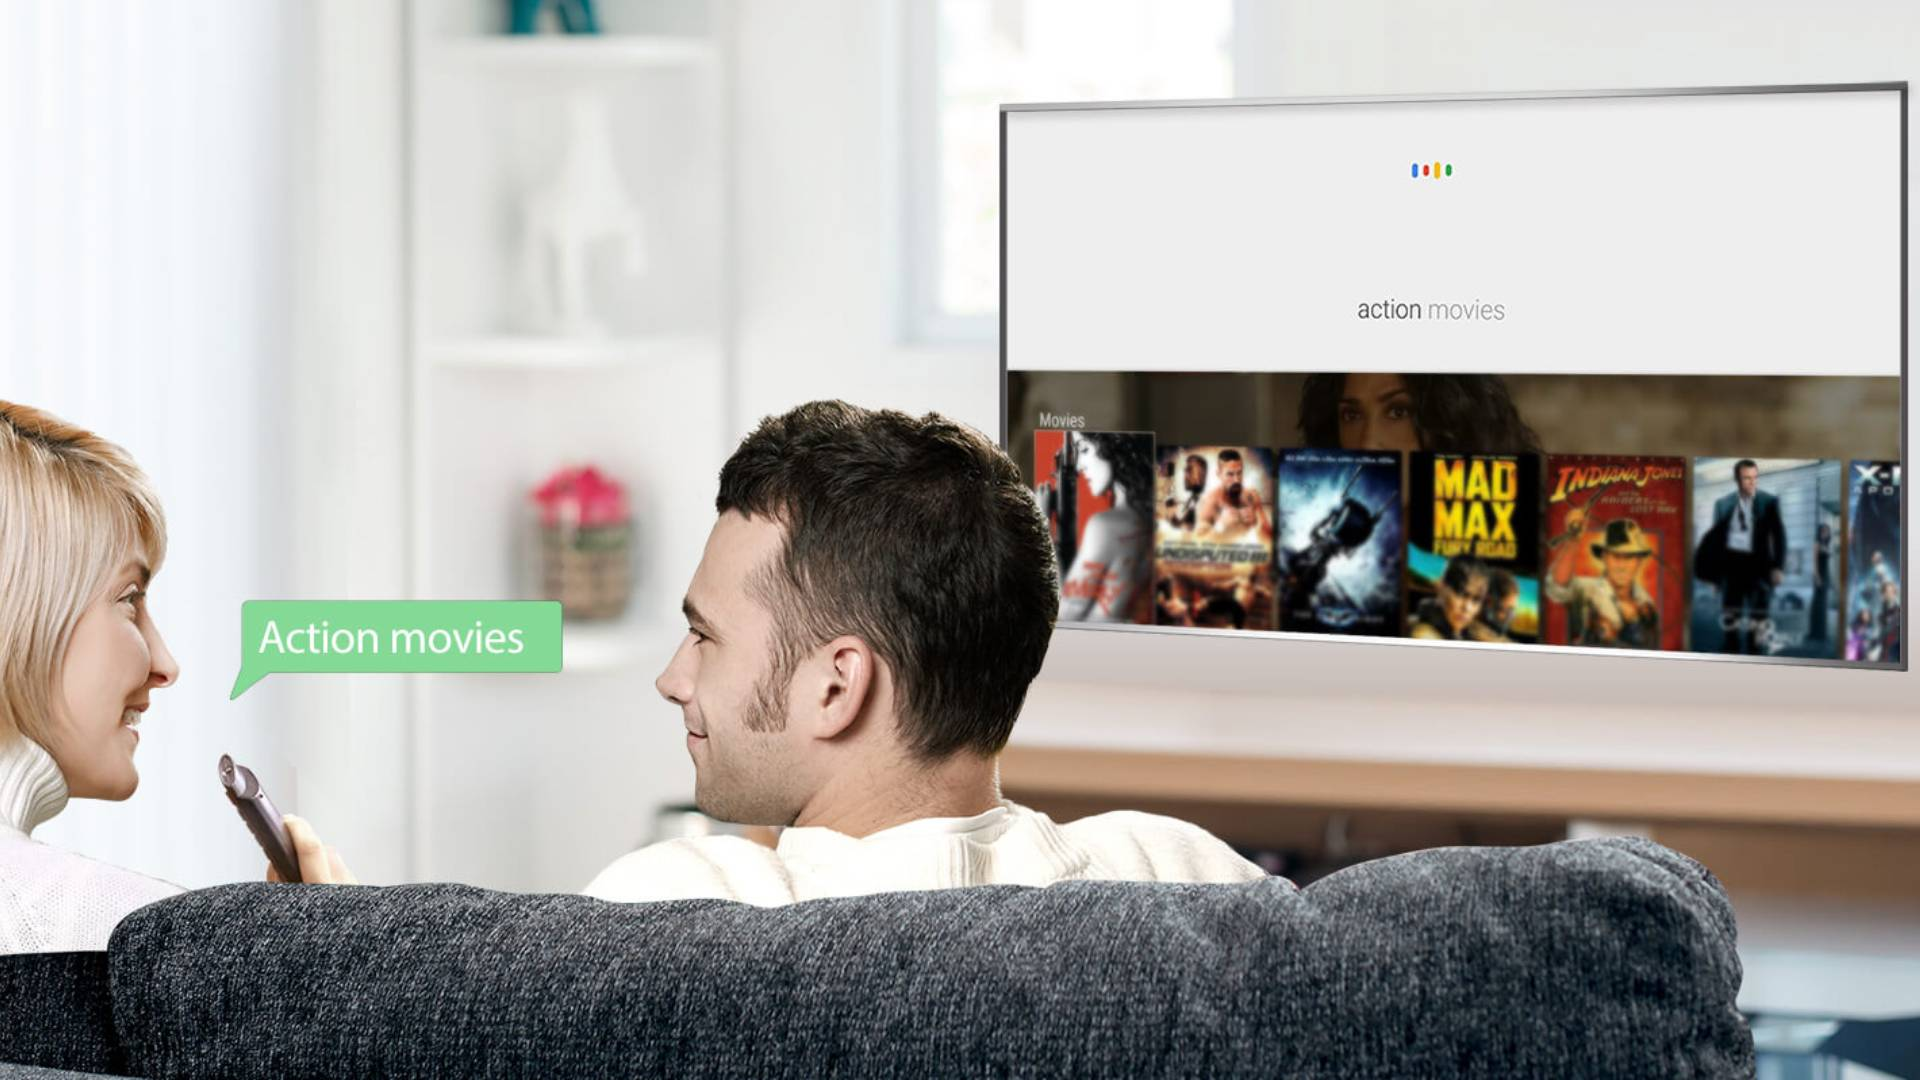 TCL LED Smart TV Voice Search